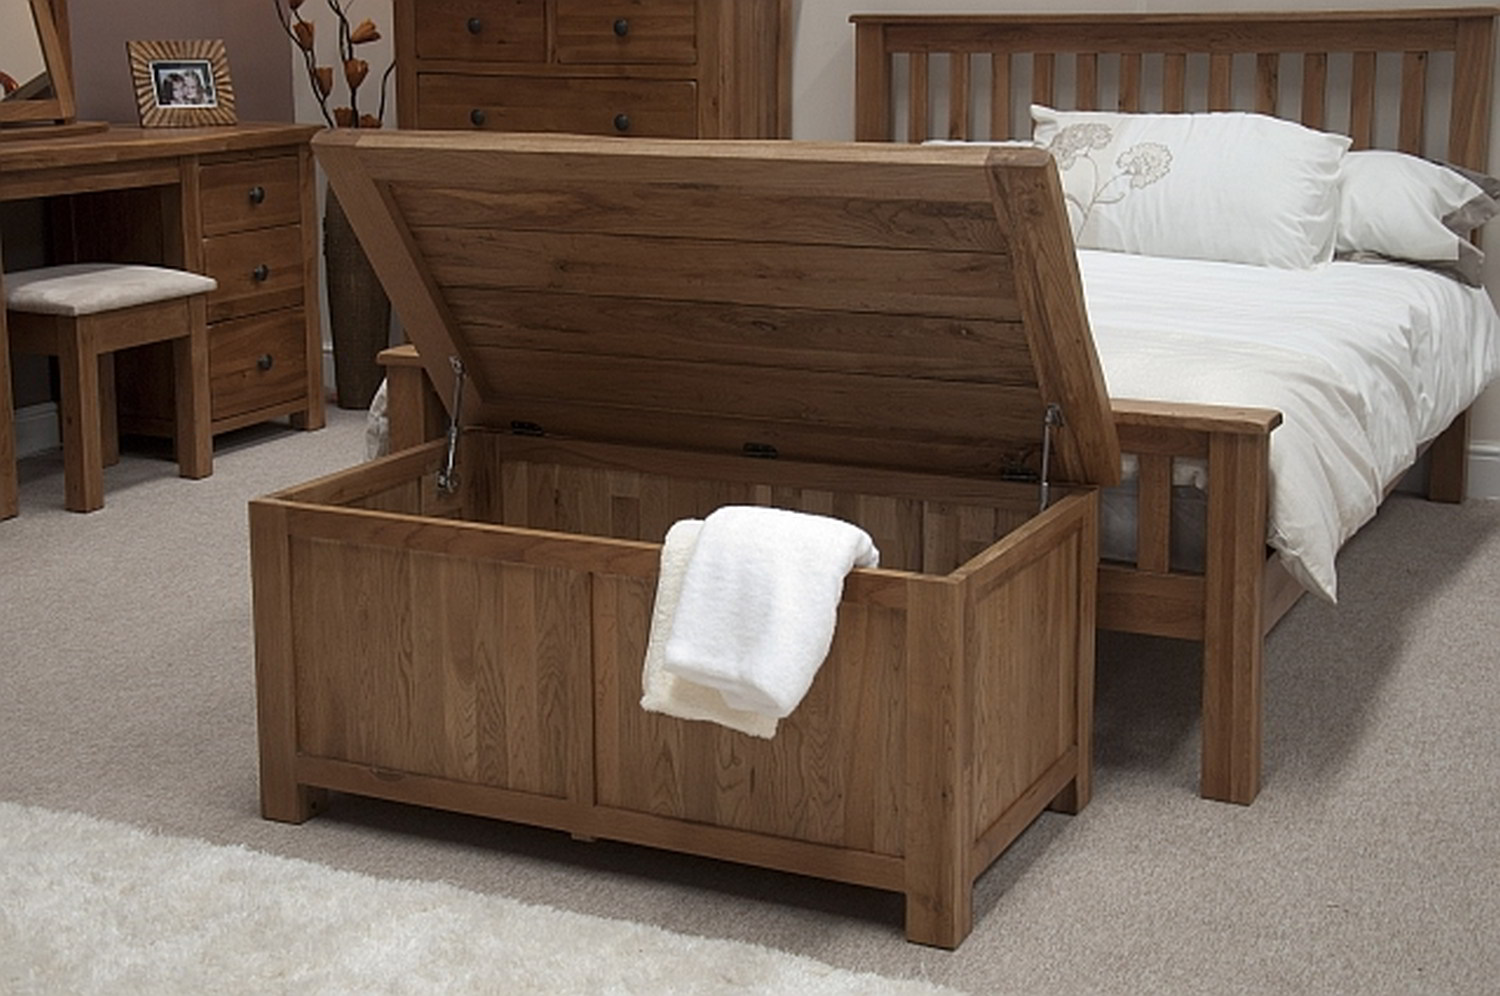 Wood Rustic Storage Bed